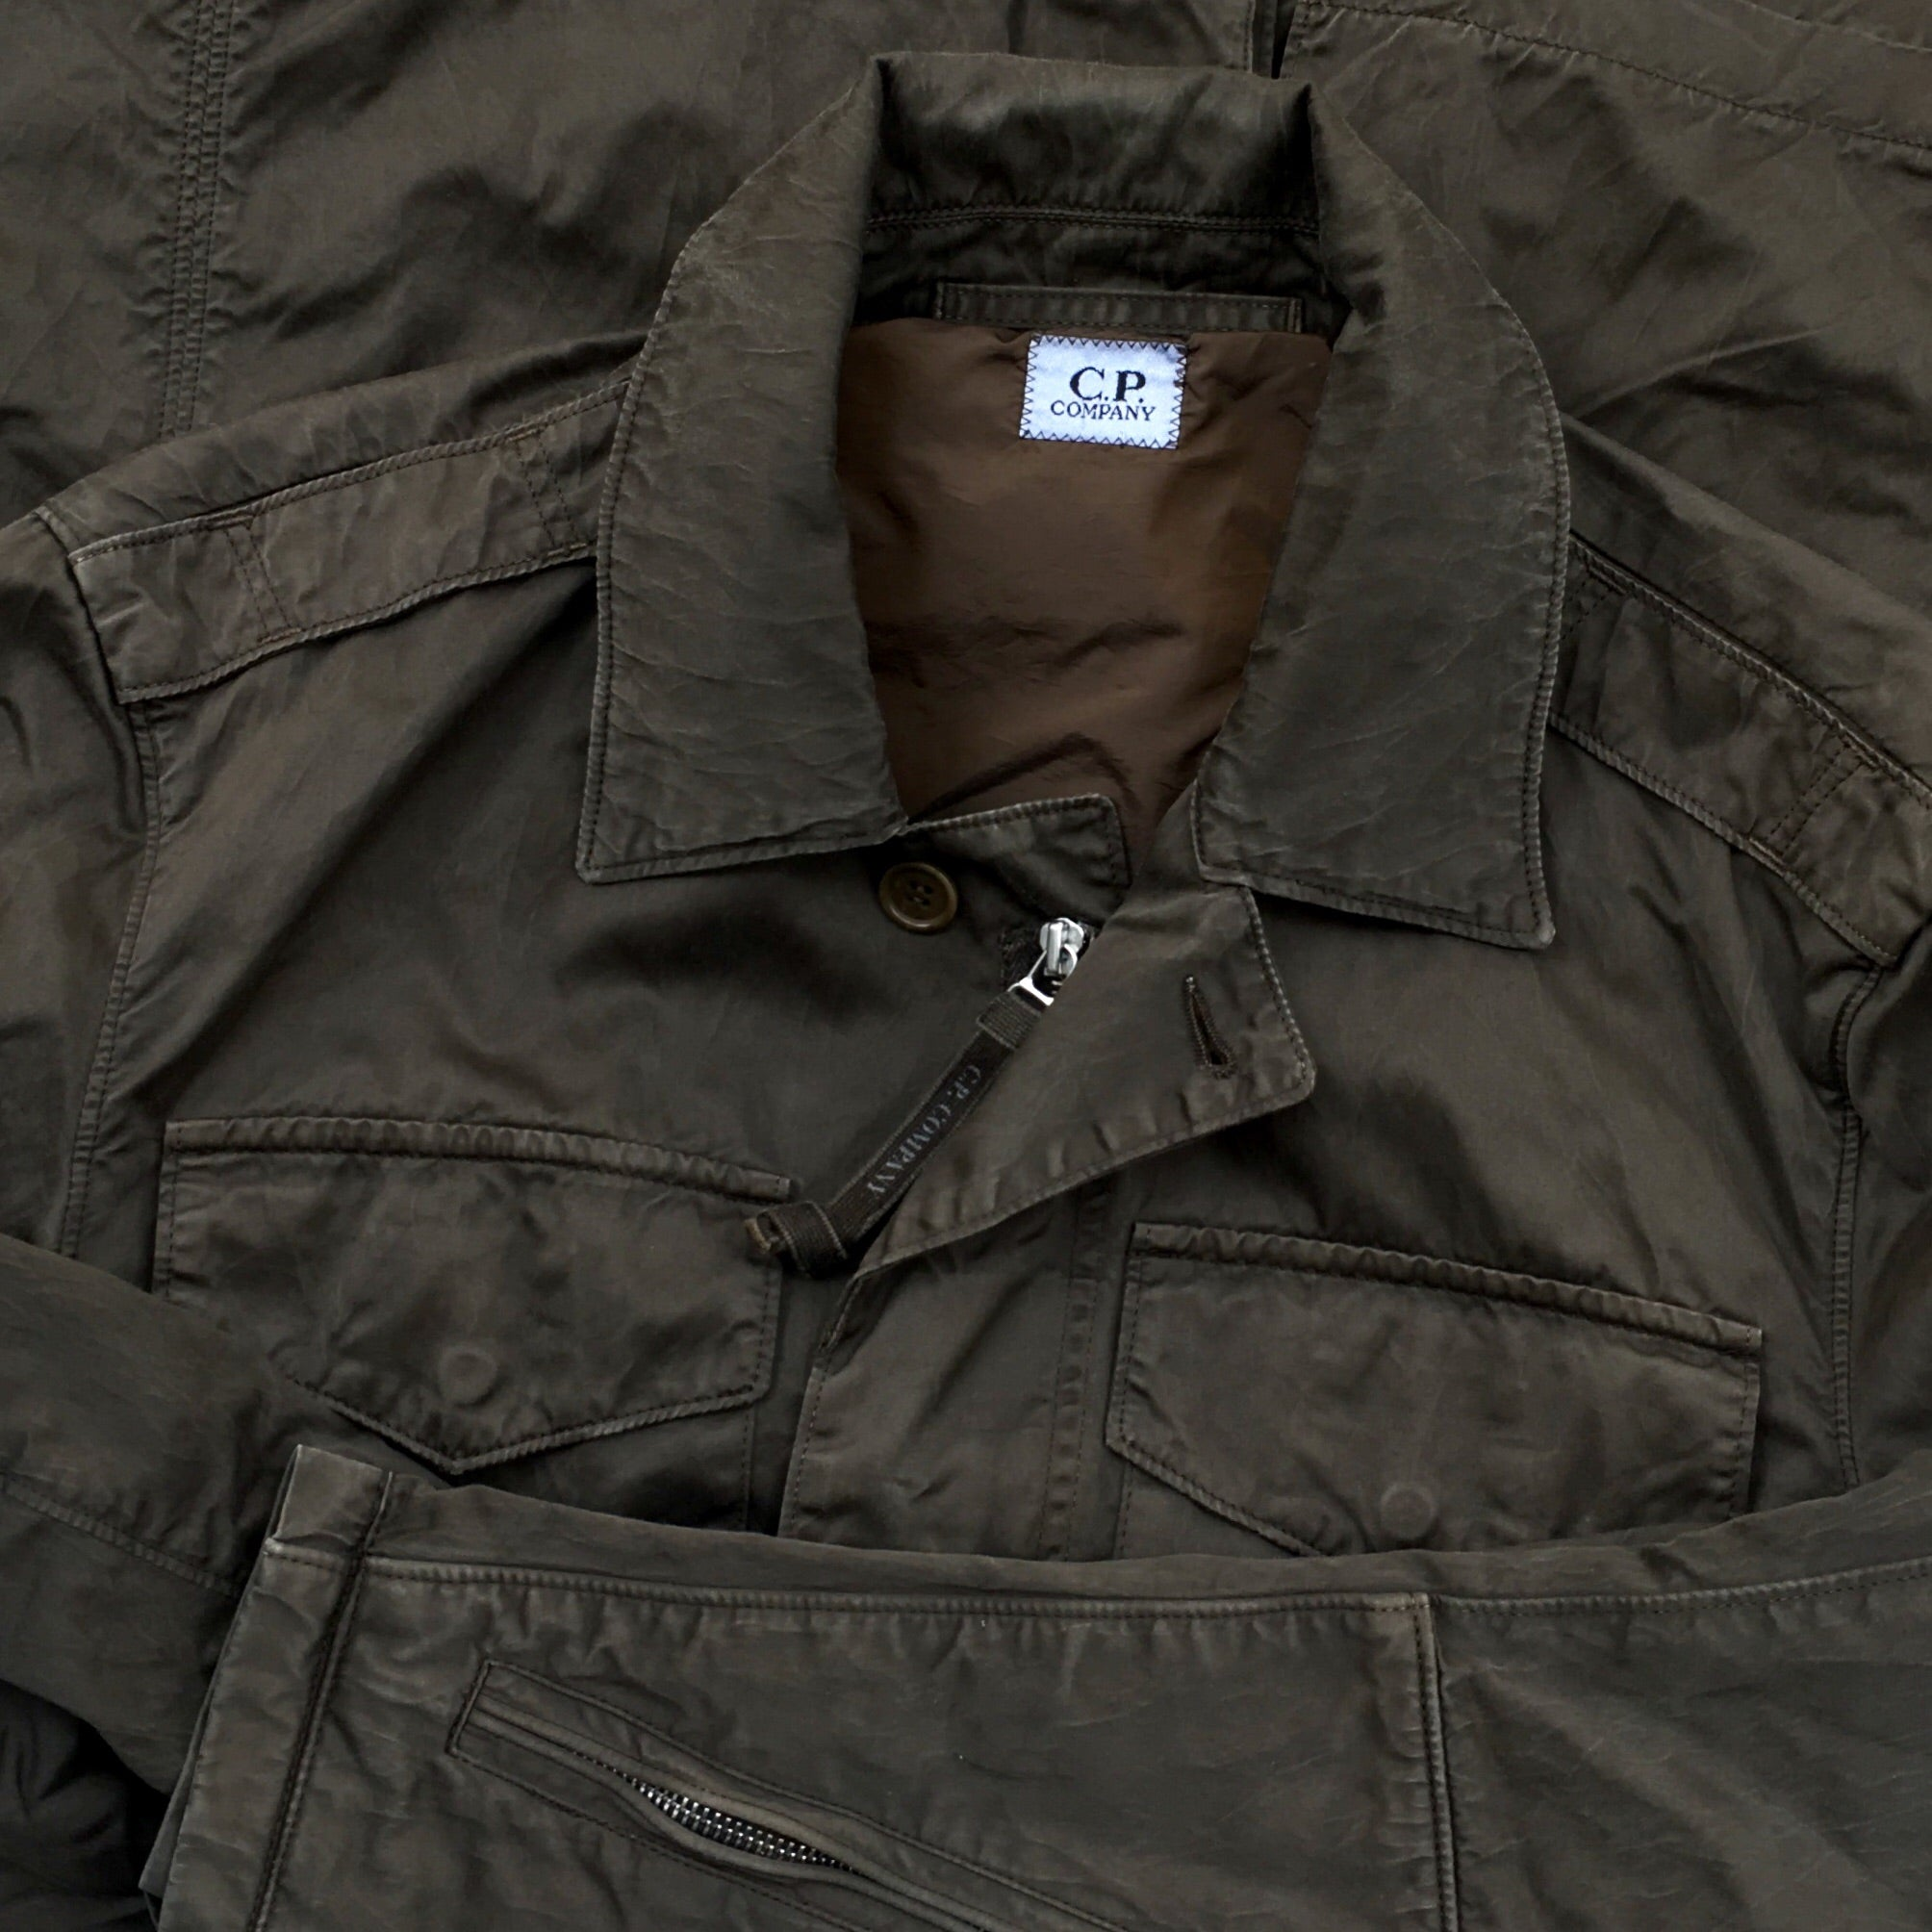 C.P. Company SS 2007 Garment Dyed Jacket (M/L)